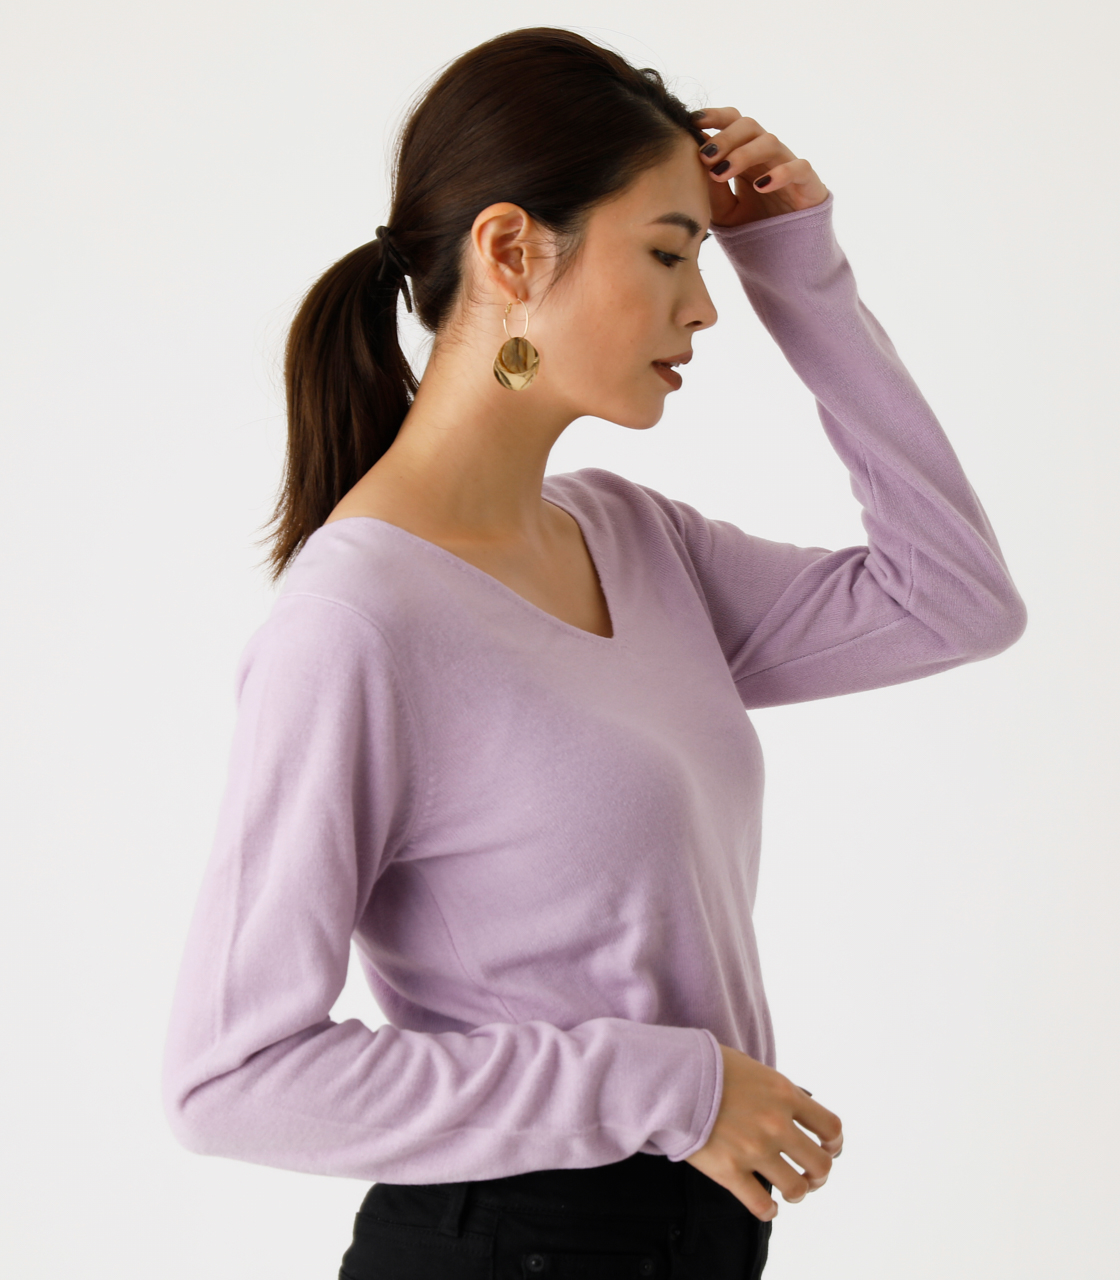 NUDIE V/N KNIT TOPS Ⅲ/ヌーディーVネックニットトップスⅢ 詳細画像 L/PUR 2